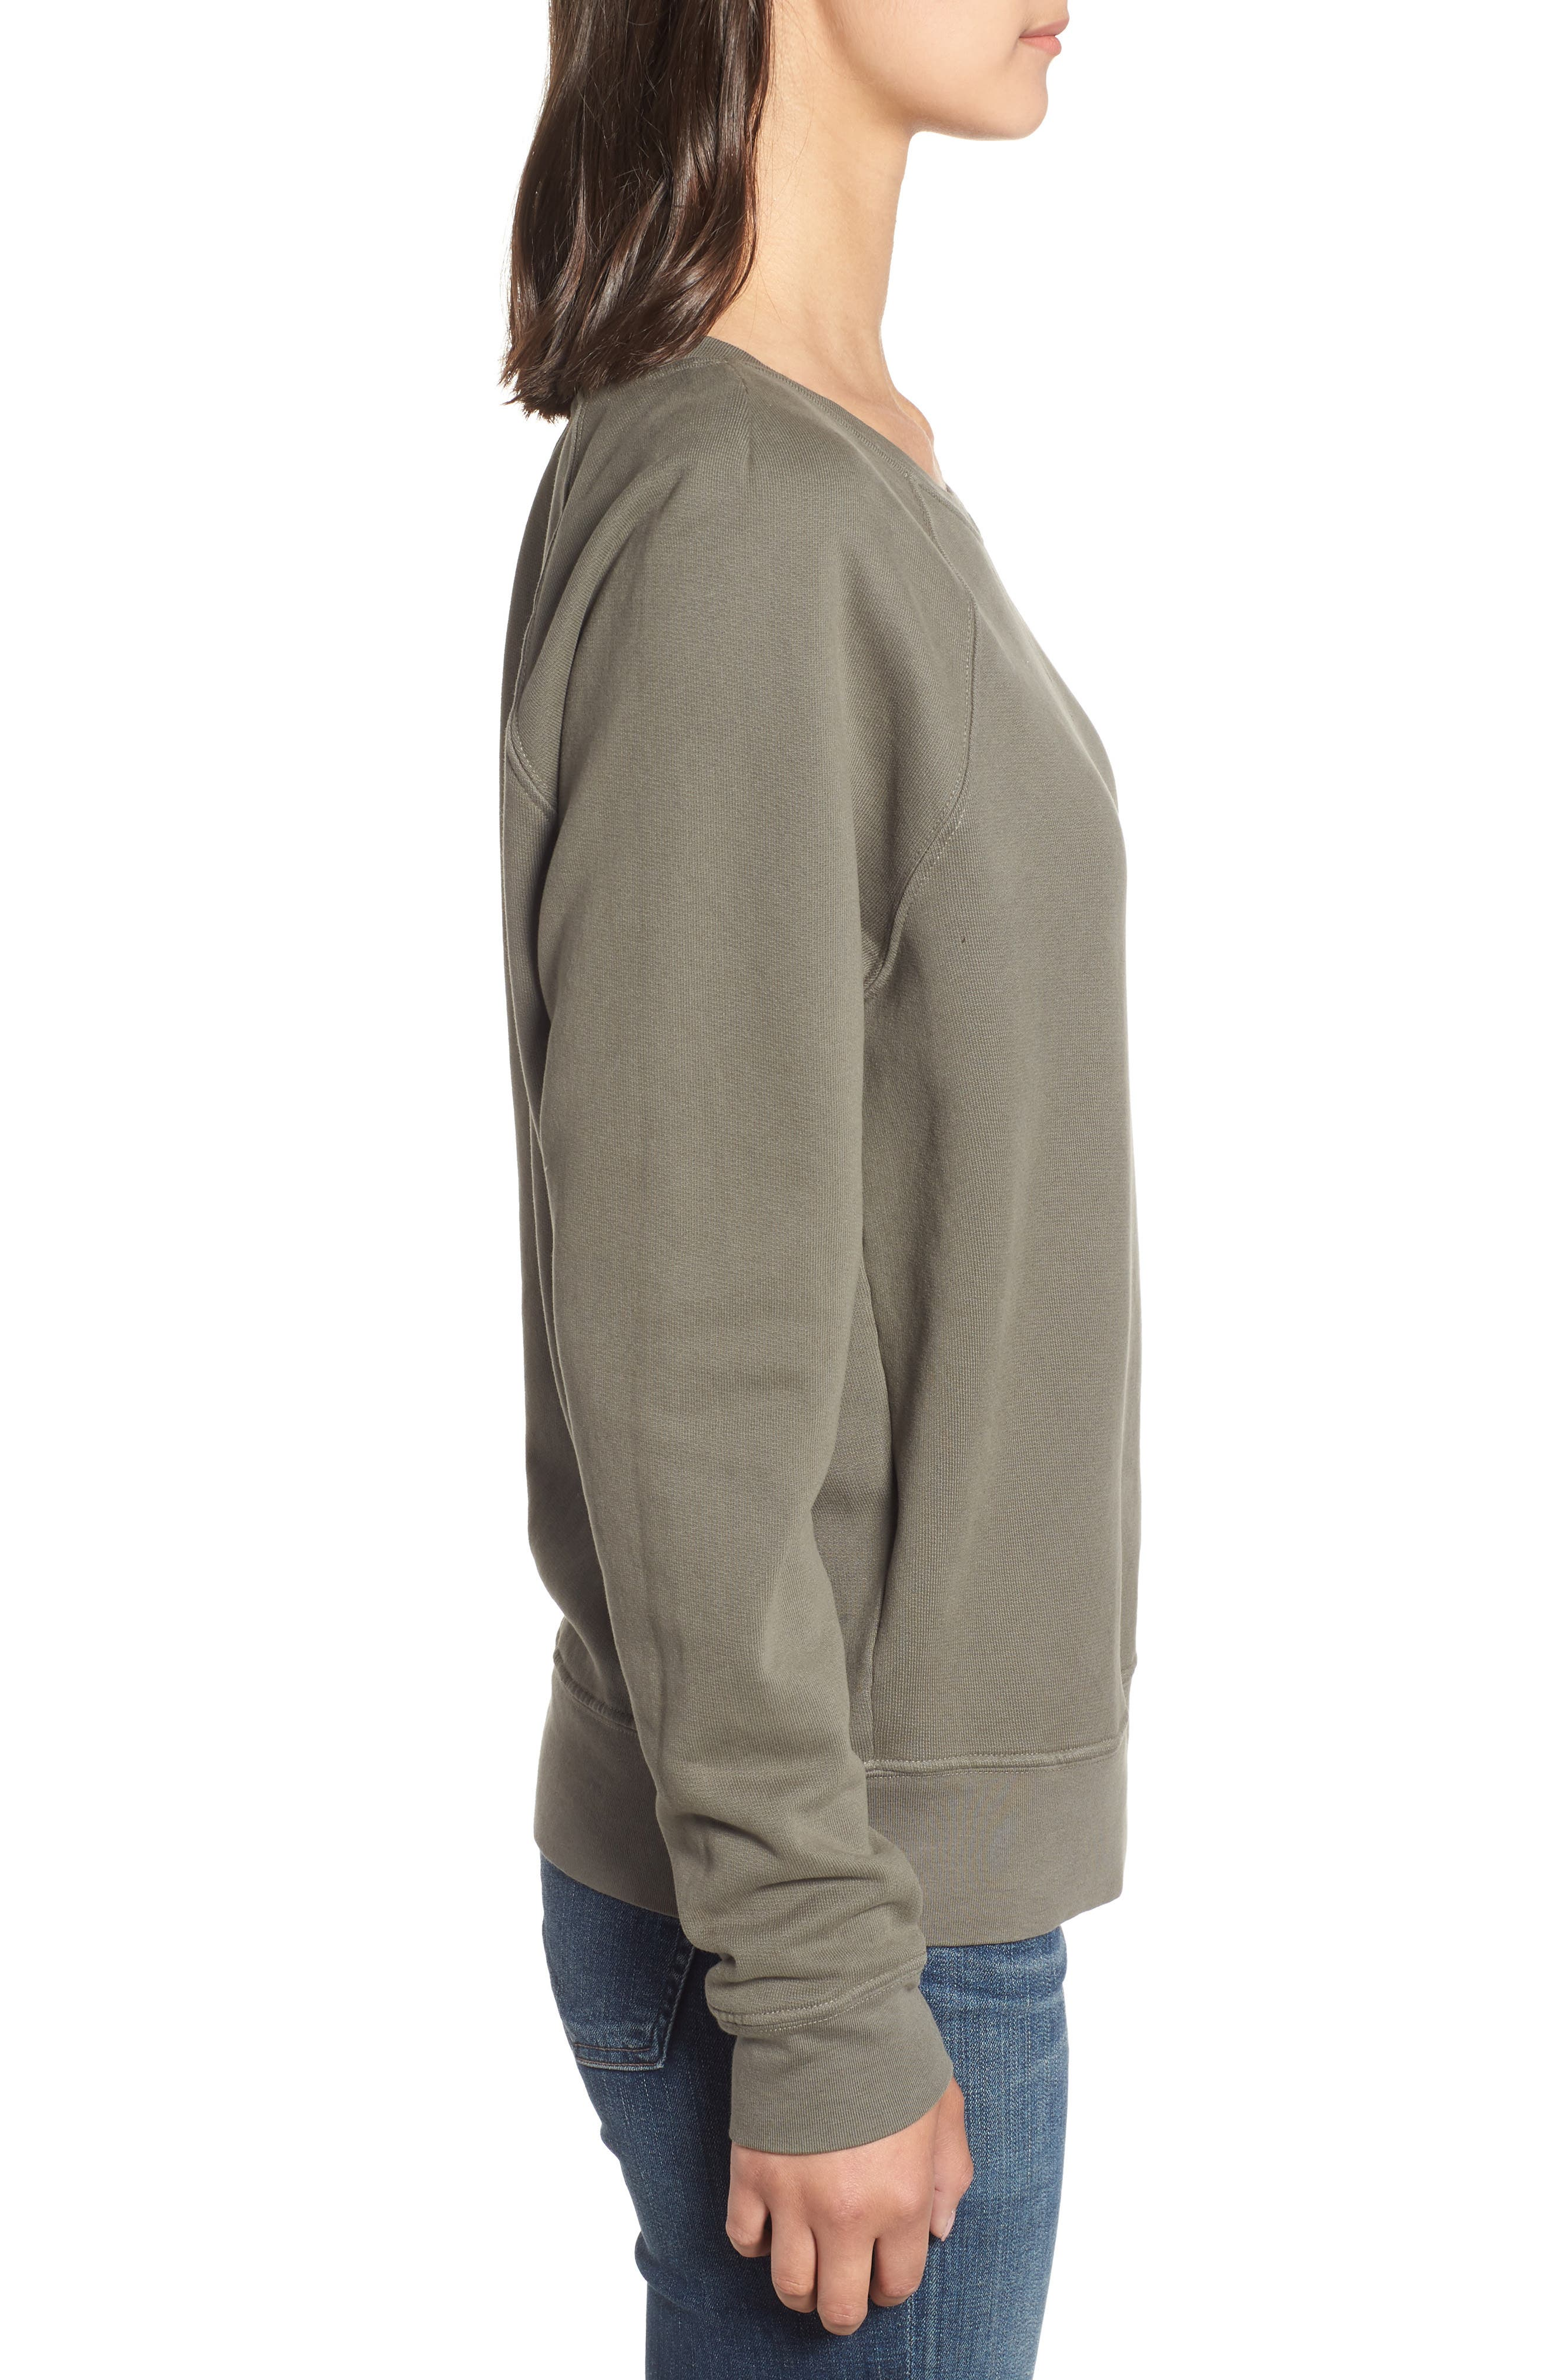 French Terry Sweatshirt,                             Alternate thumbnail 3, color,                             300